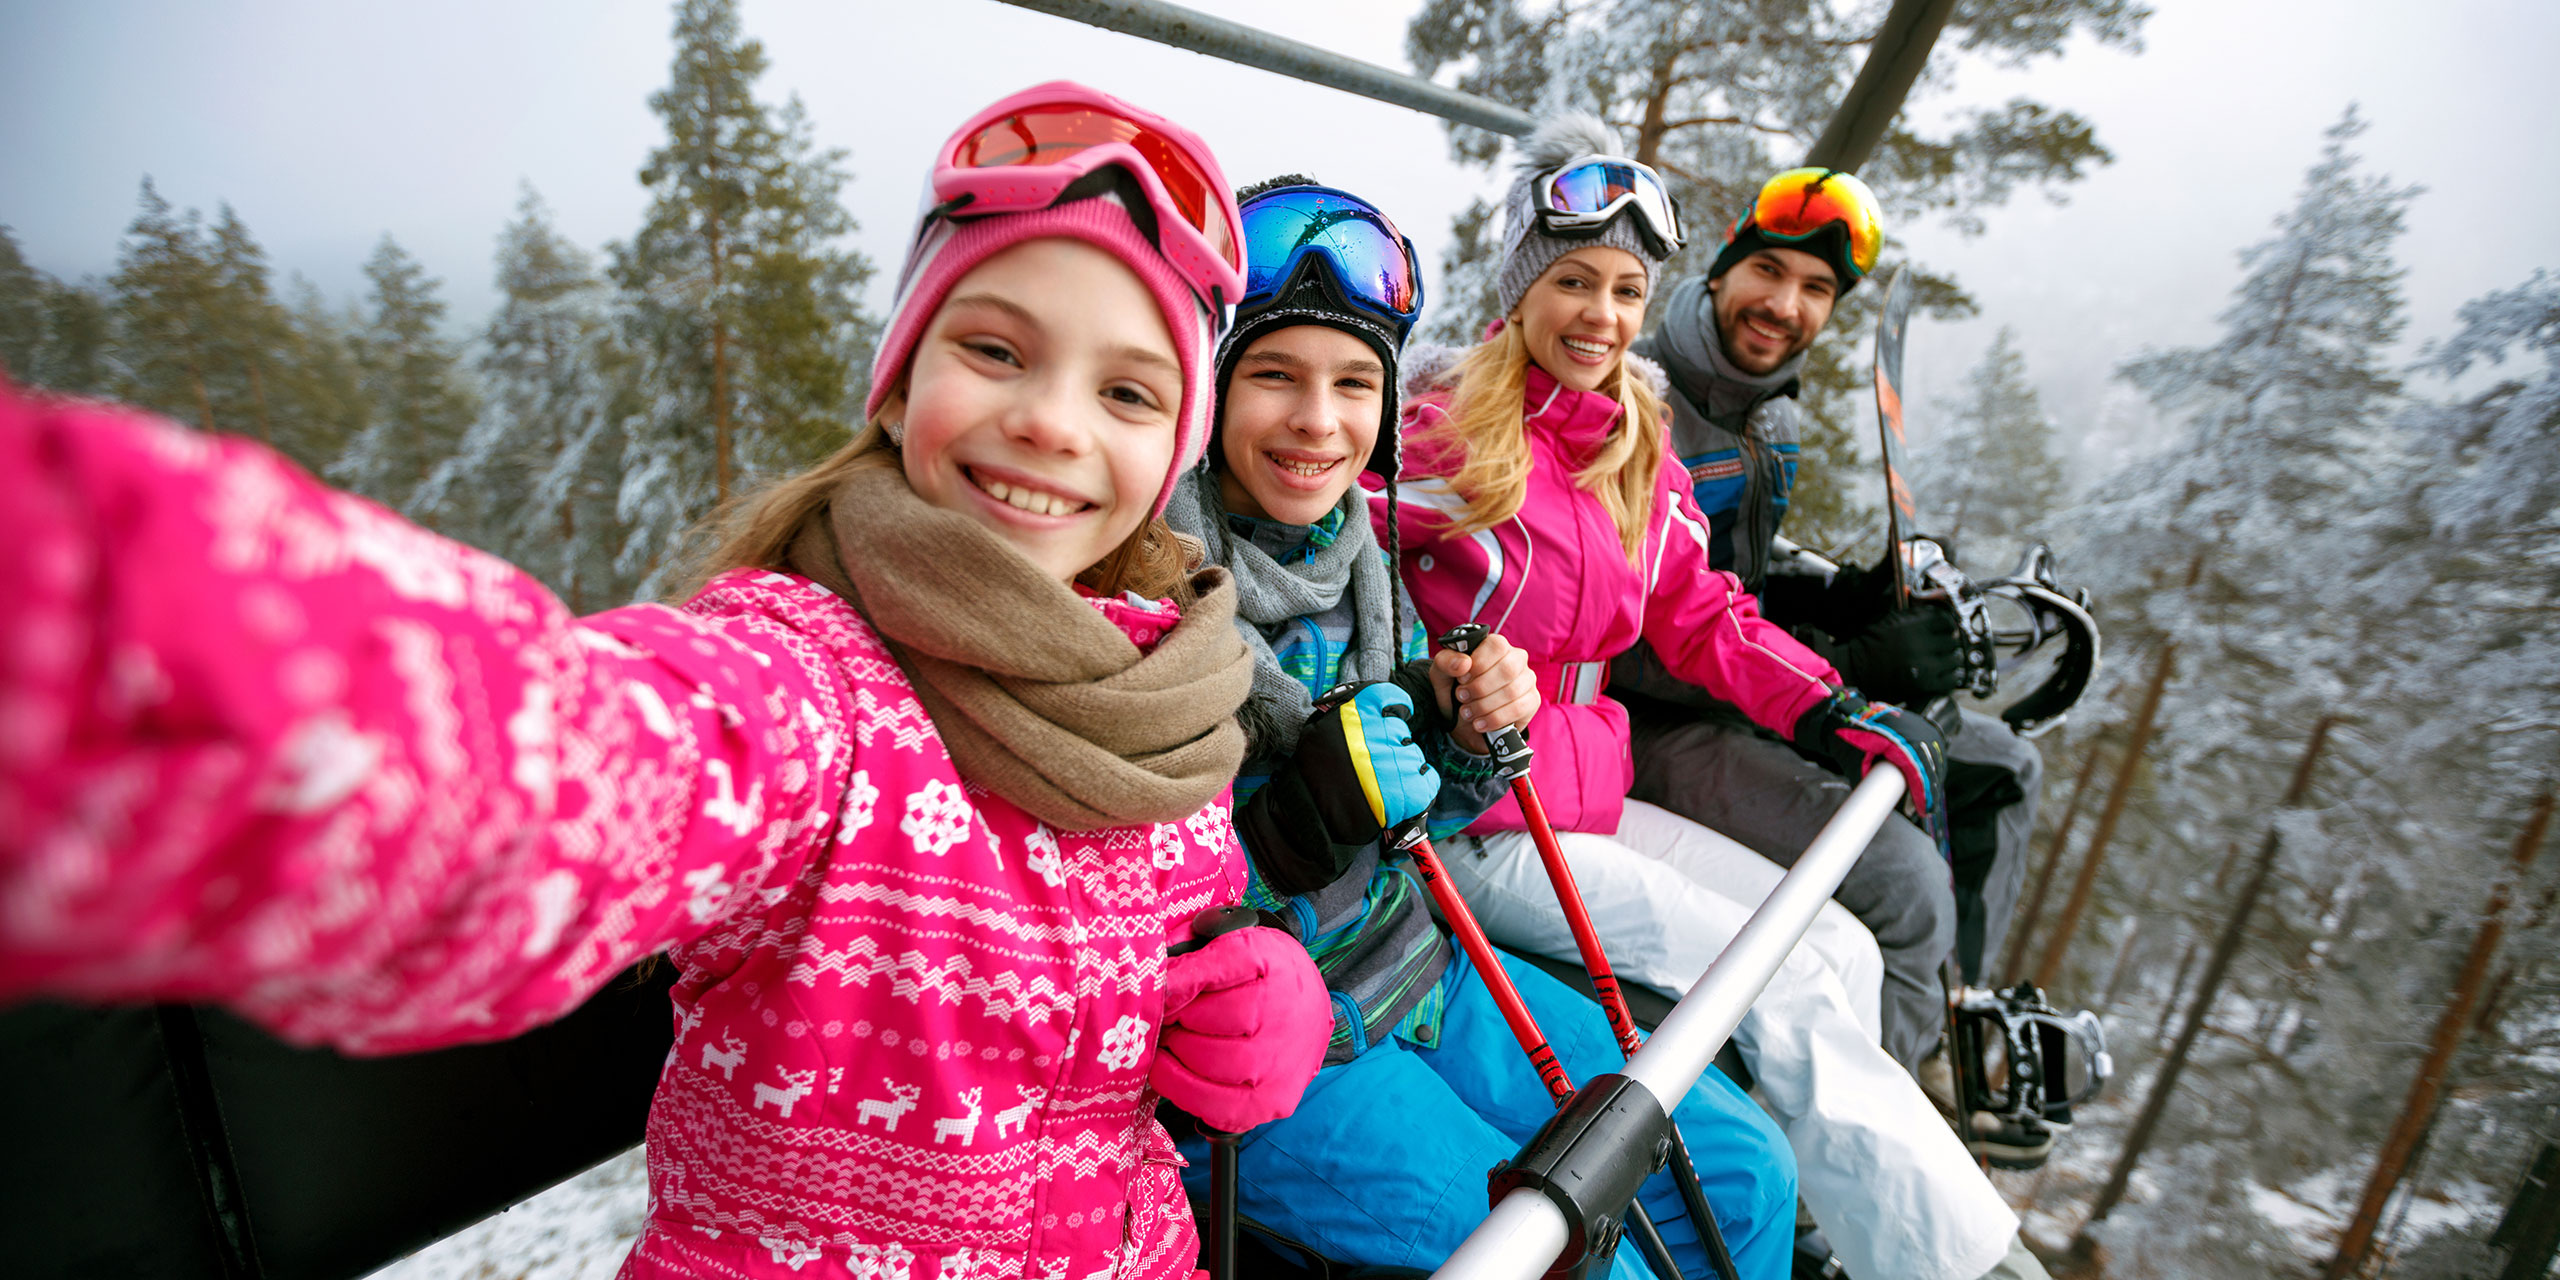 Family Taking Selfie on Ski Lift; Courtesy of Lucky Business/Shutterstock.com